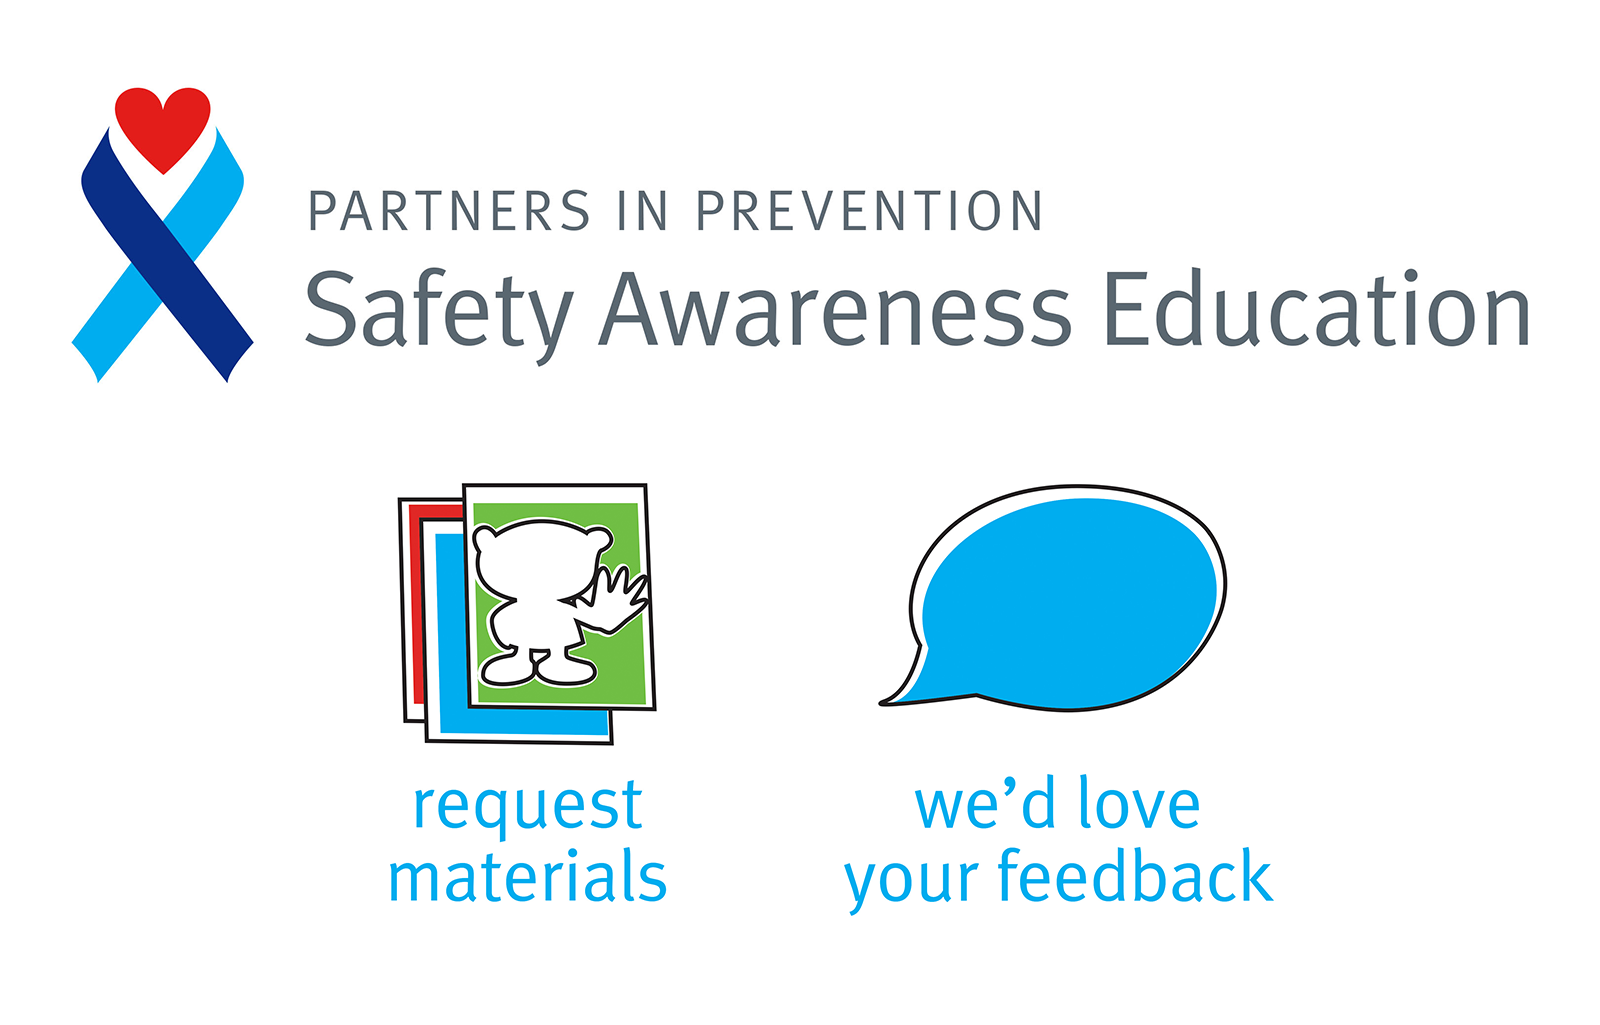 Safety Awareness Education